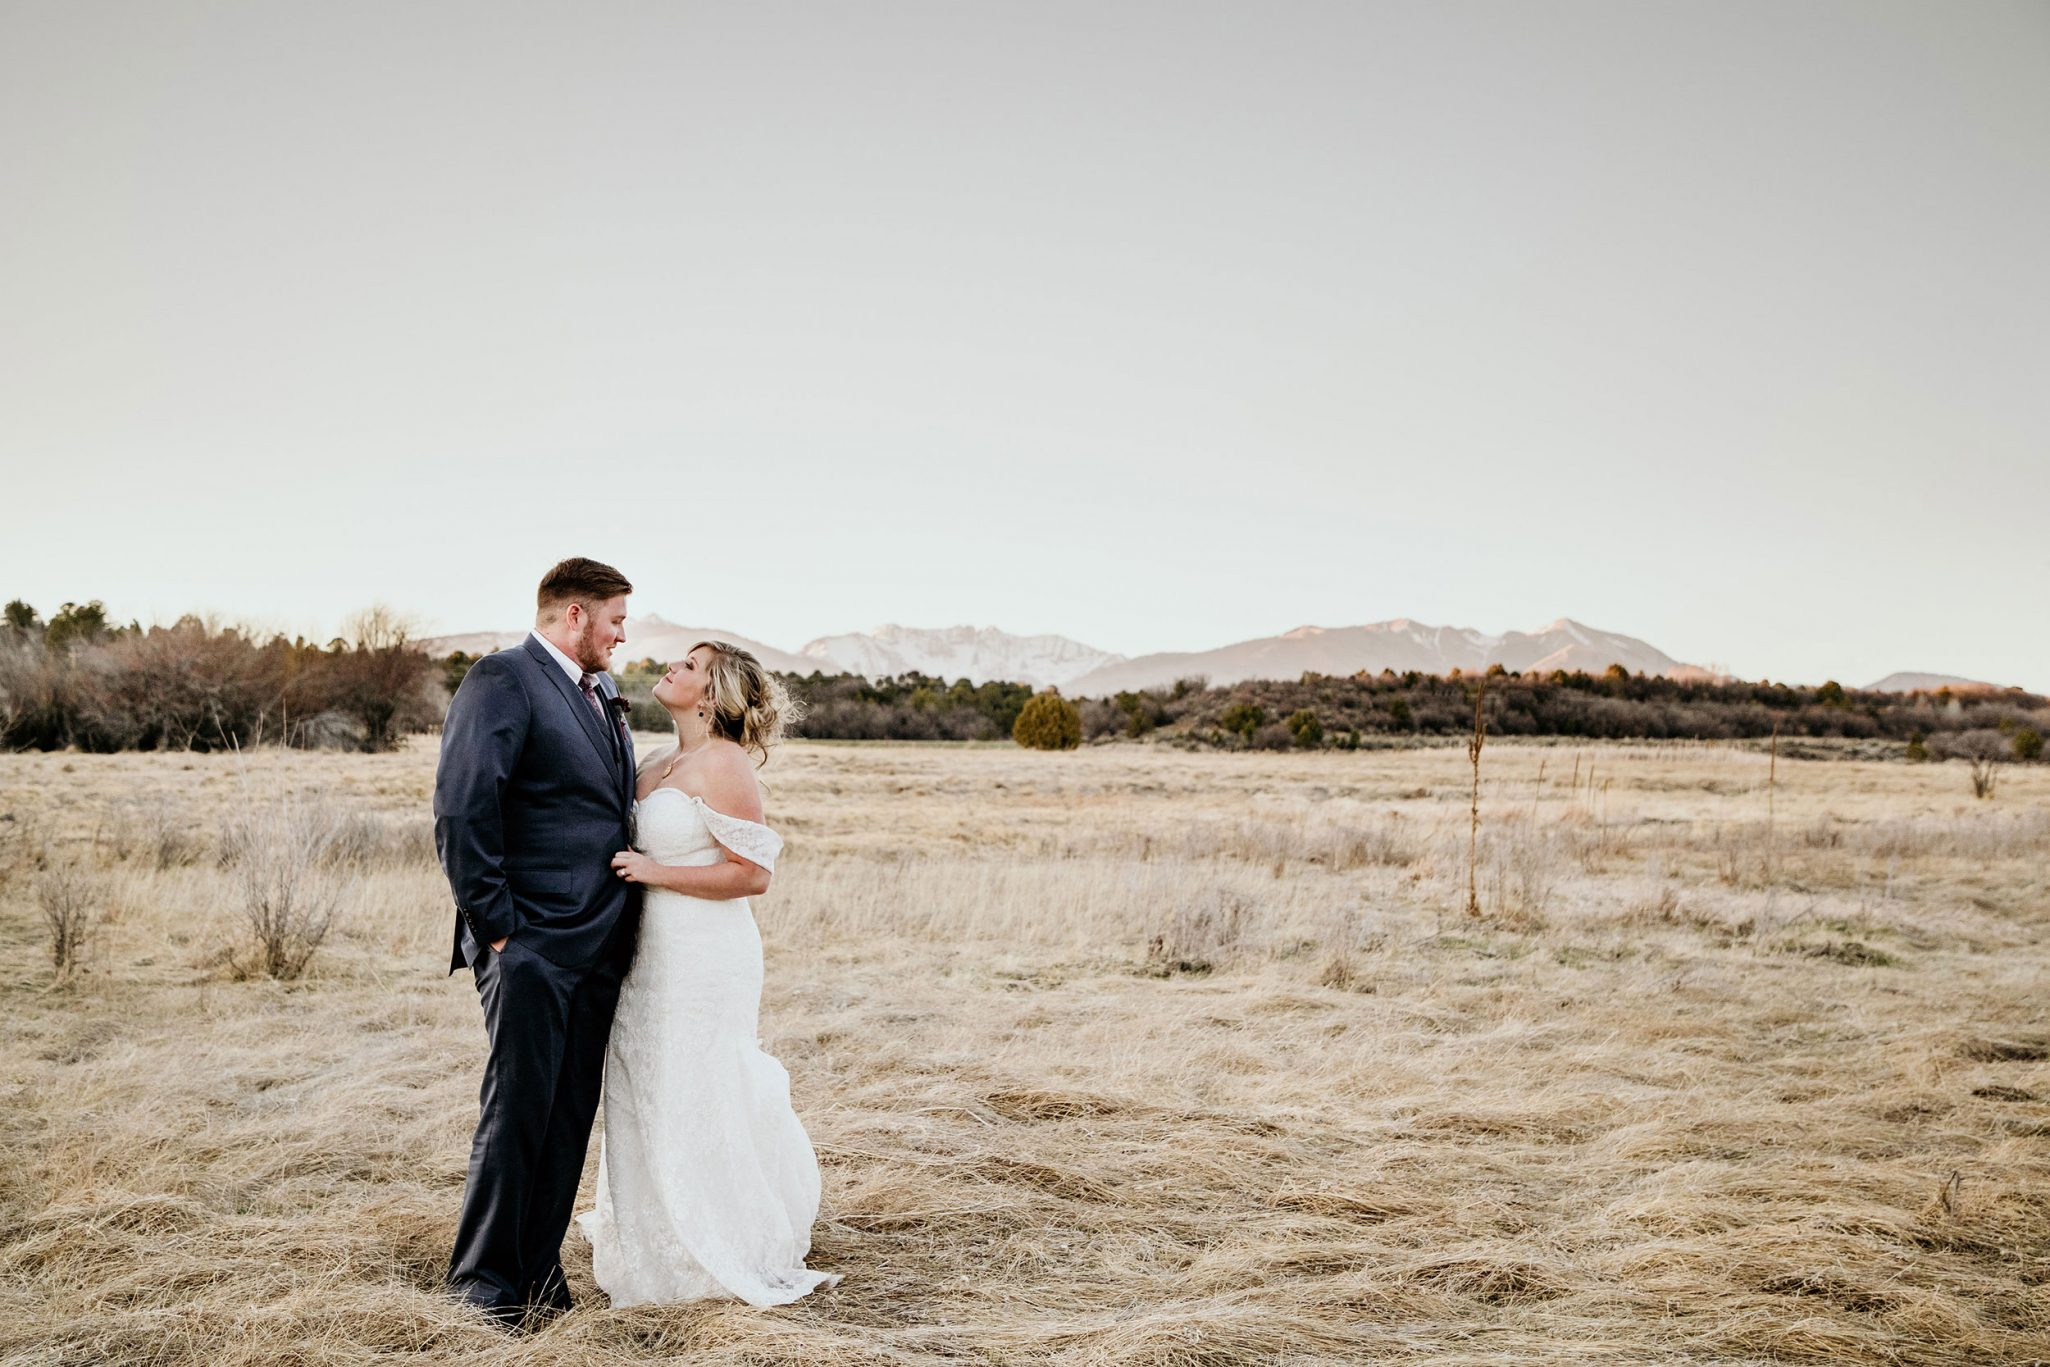 Outdoor ceremony at Ridgewood Event Center via Durango Weddings Magazine